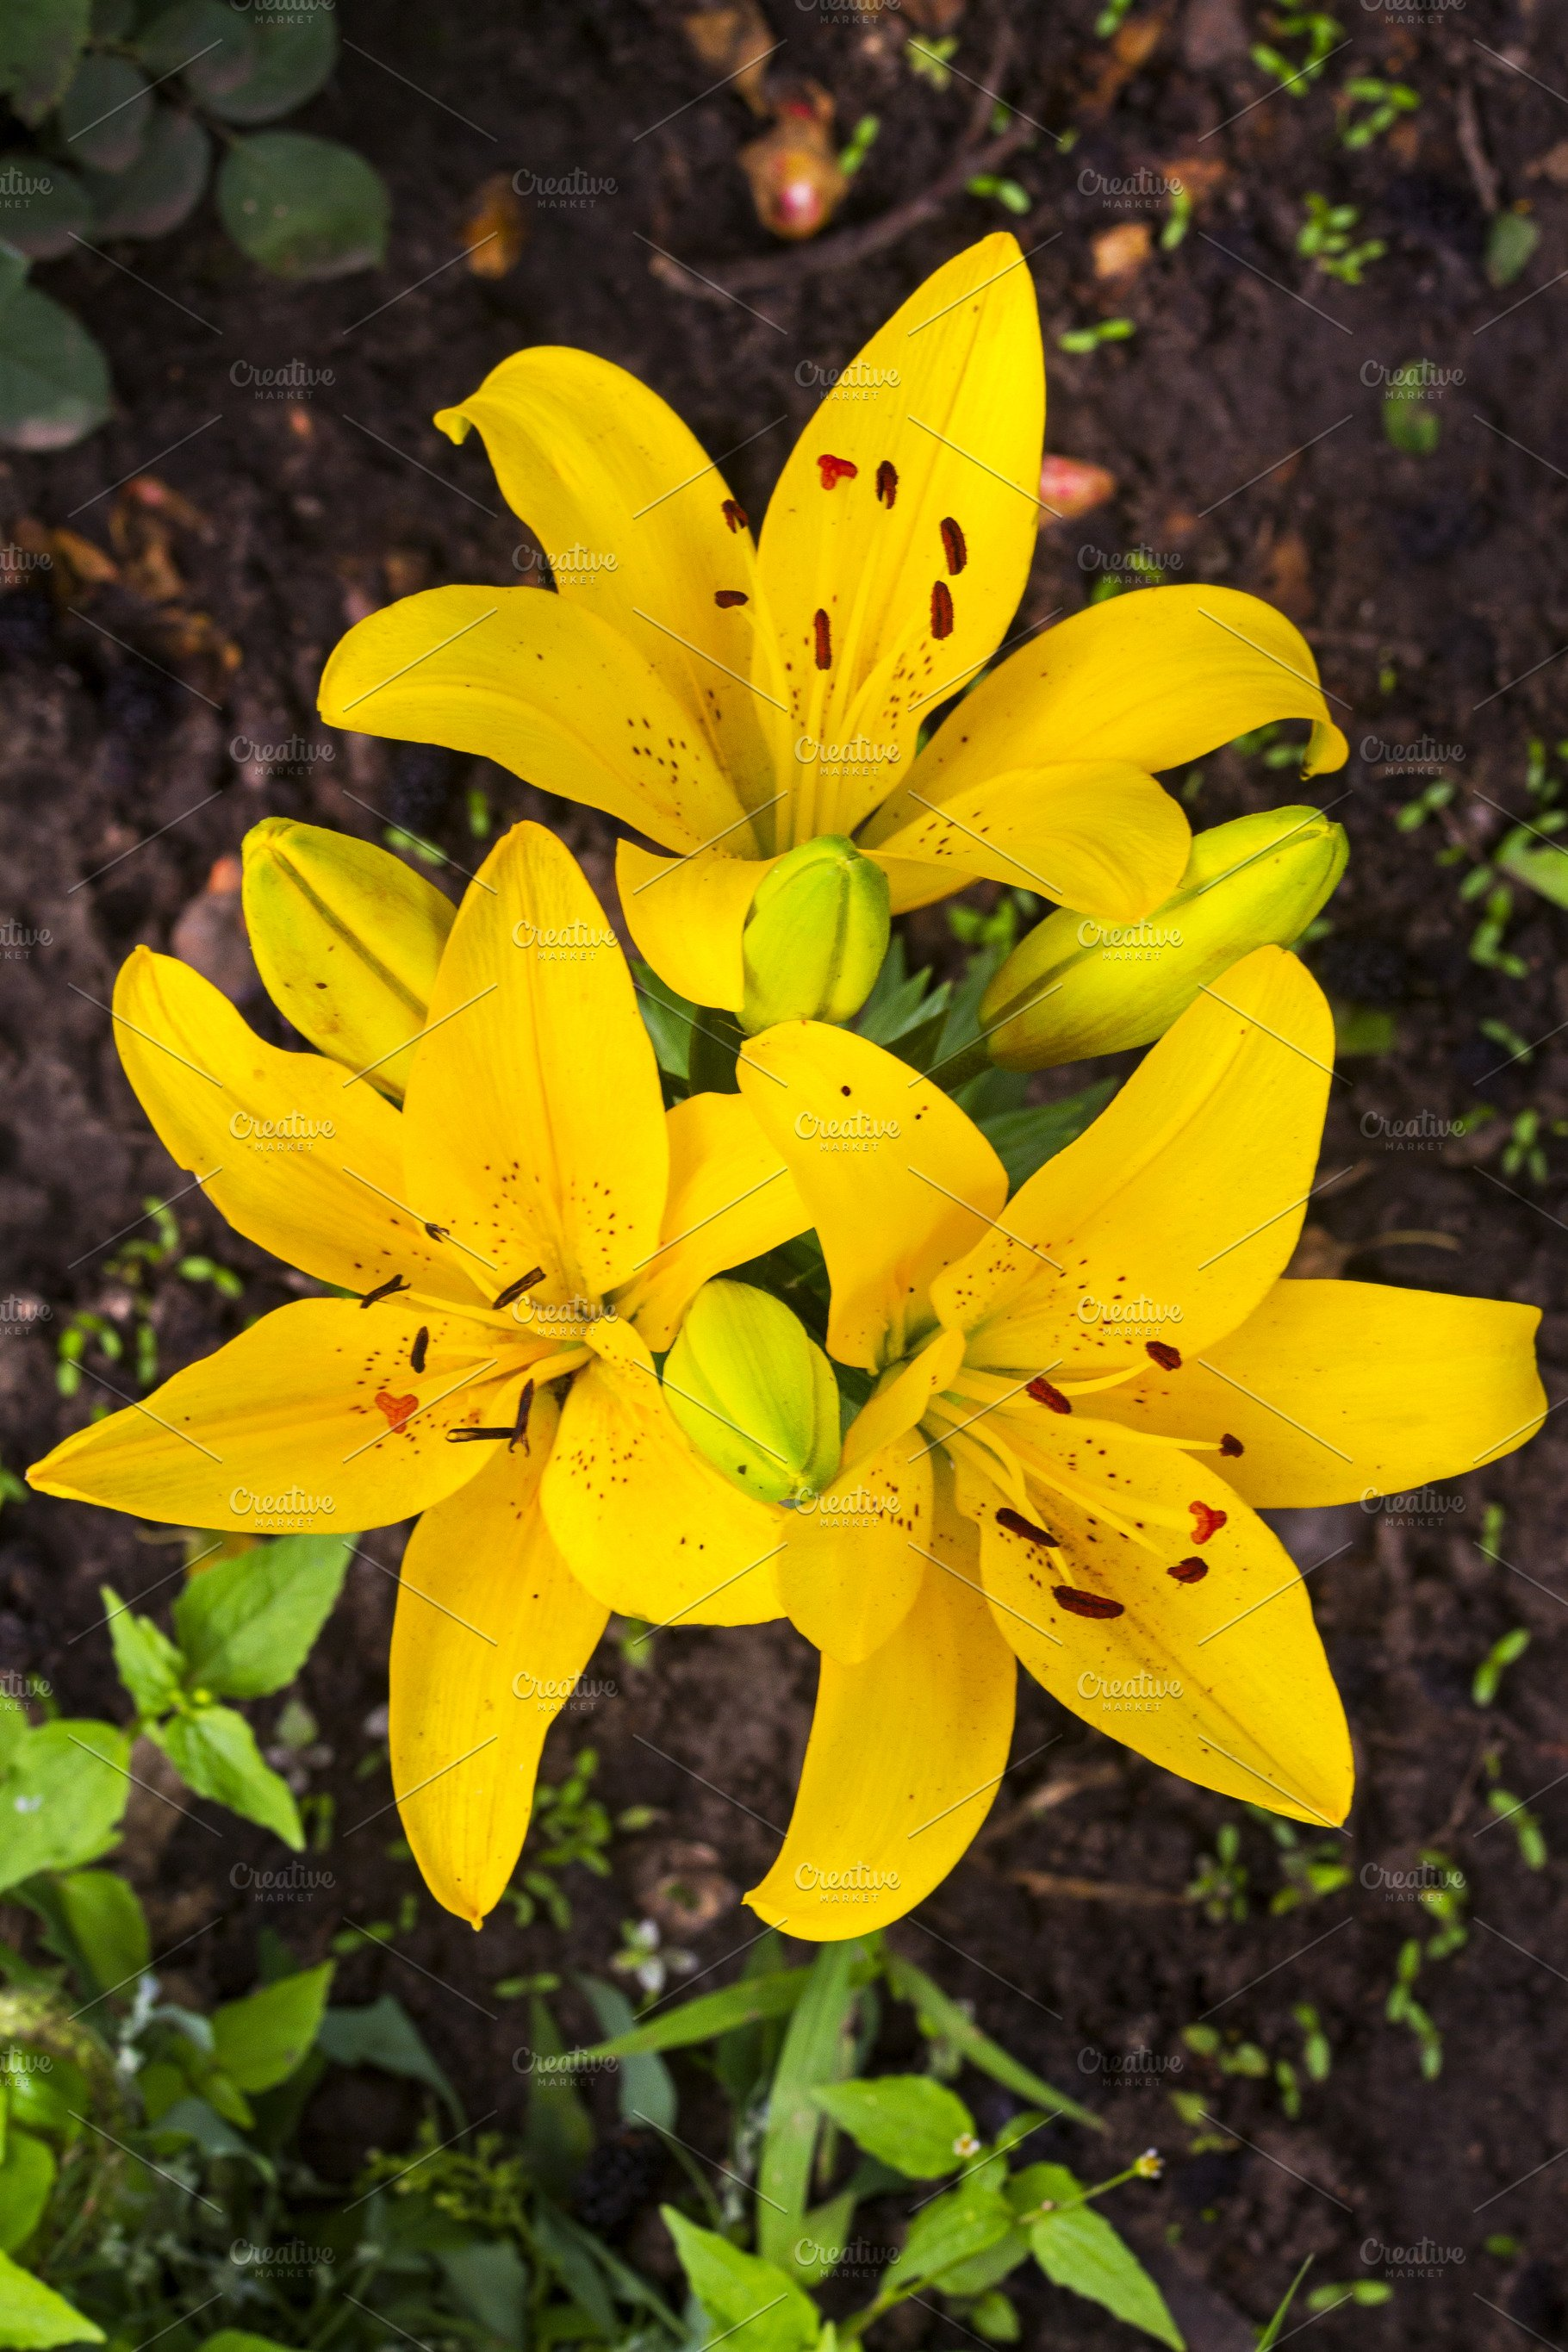 Yellow Lilies Summer Flowers High Quality Nature Stock Photos